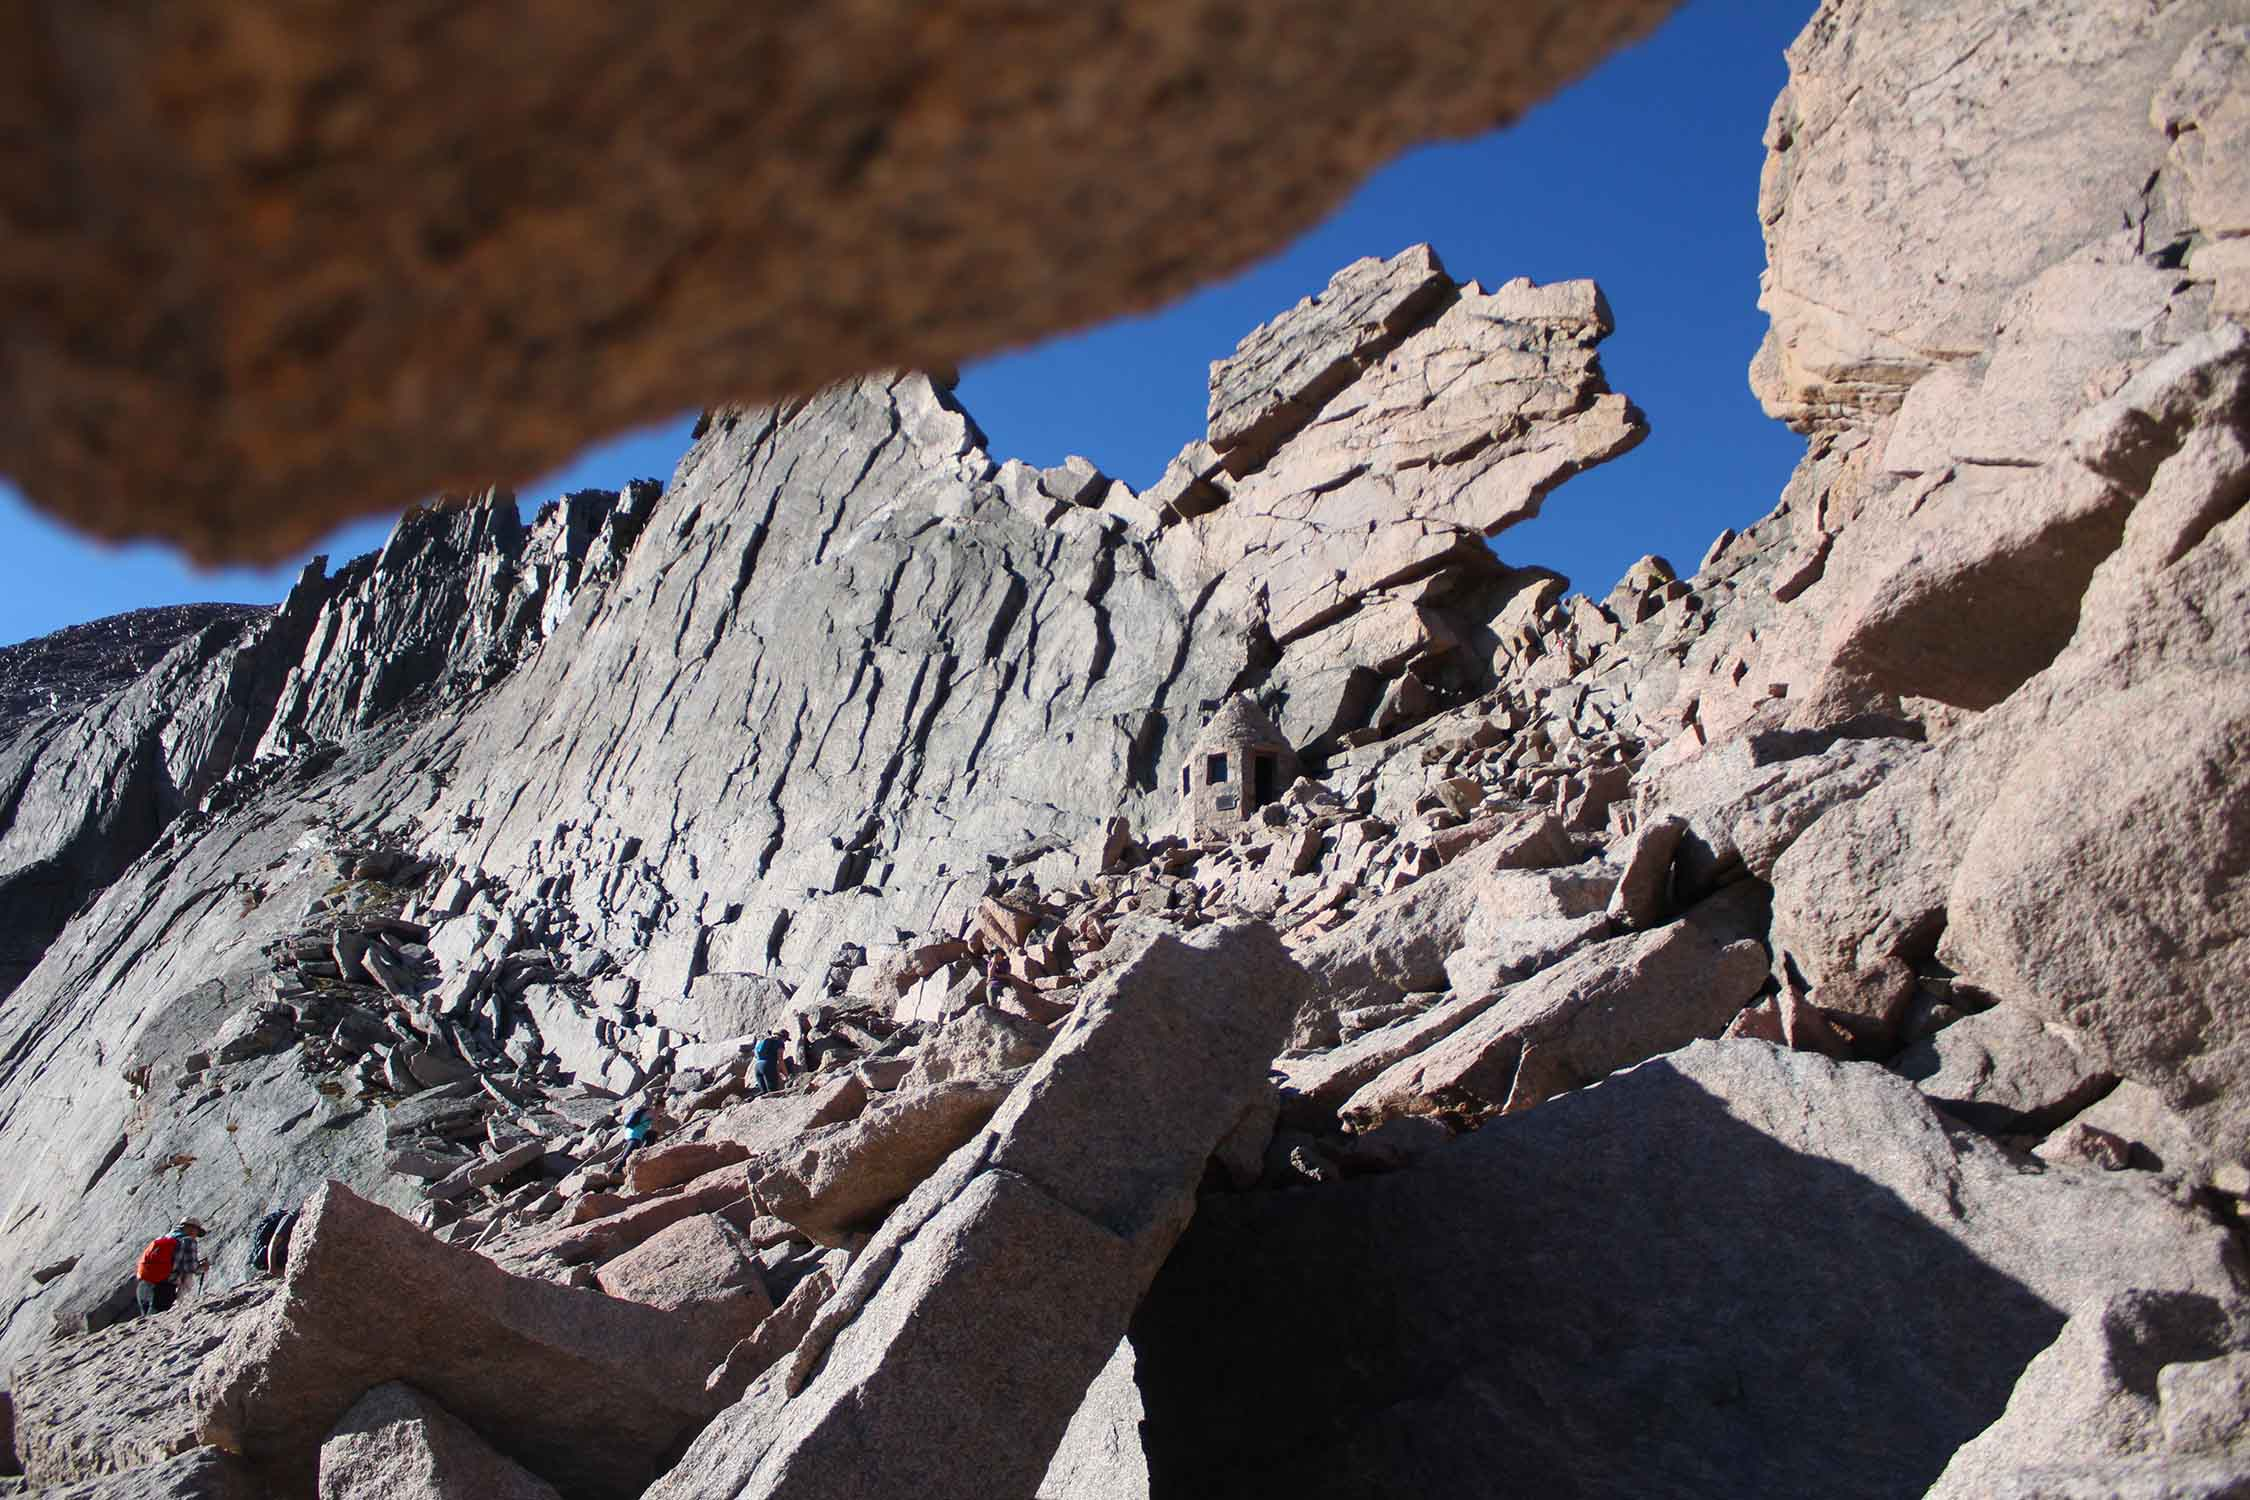 View of the Keyhole on the Longs Peak Hike.